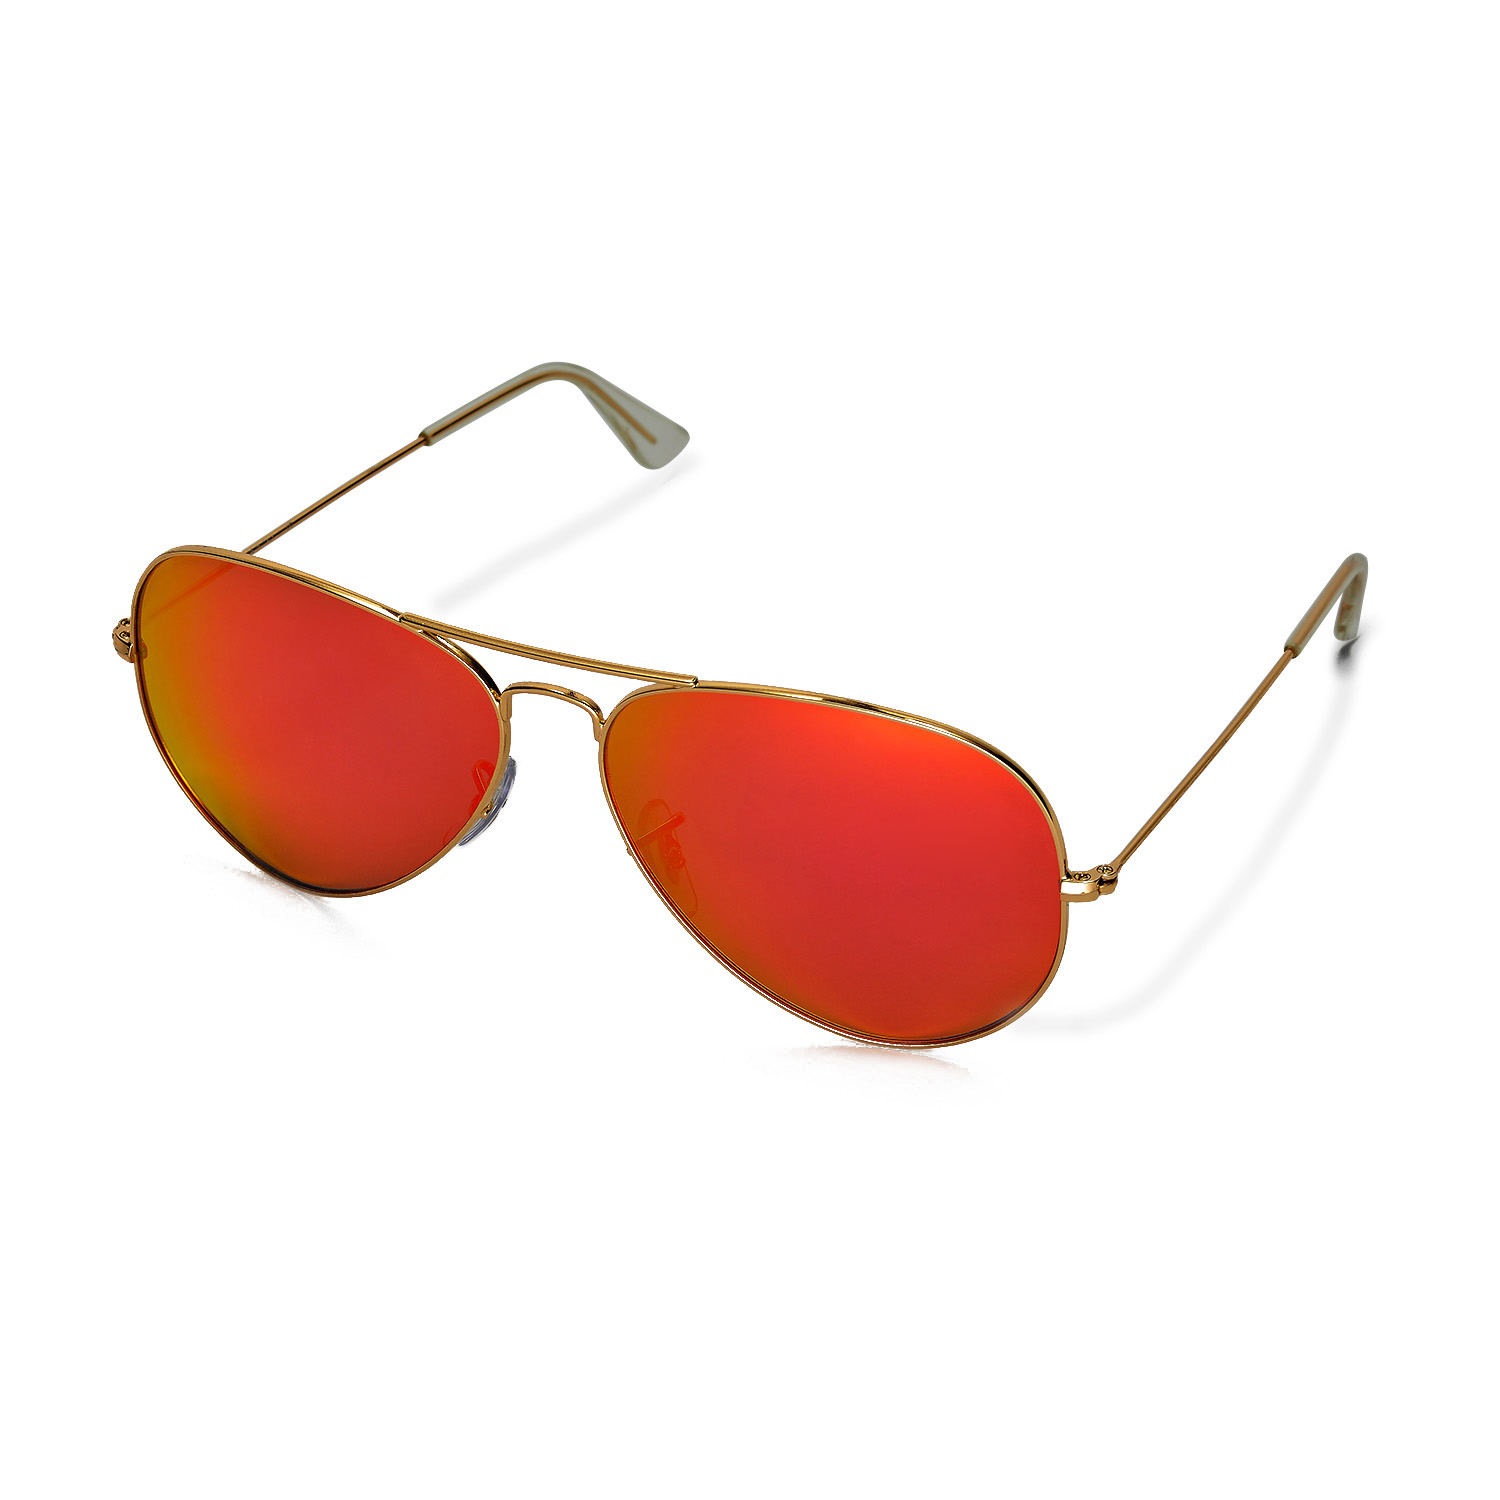 8207321a7f Ray Ban Aviator Sunglasses Fire Orange Gold Mirror Gold Frame 3025 ...